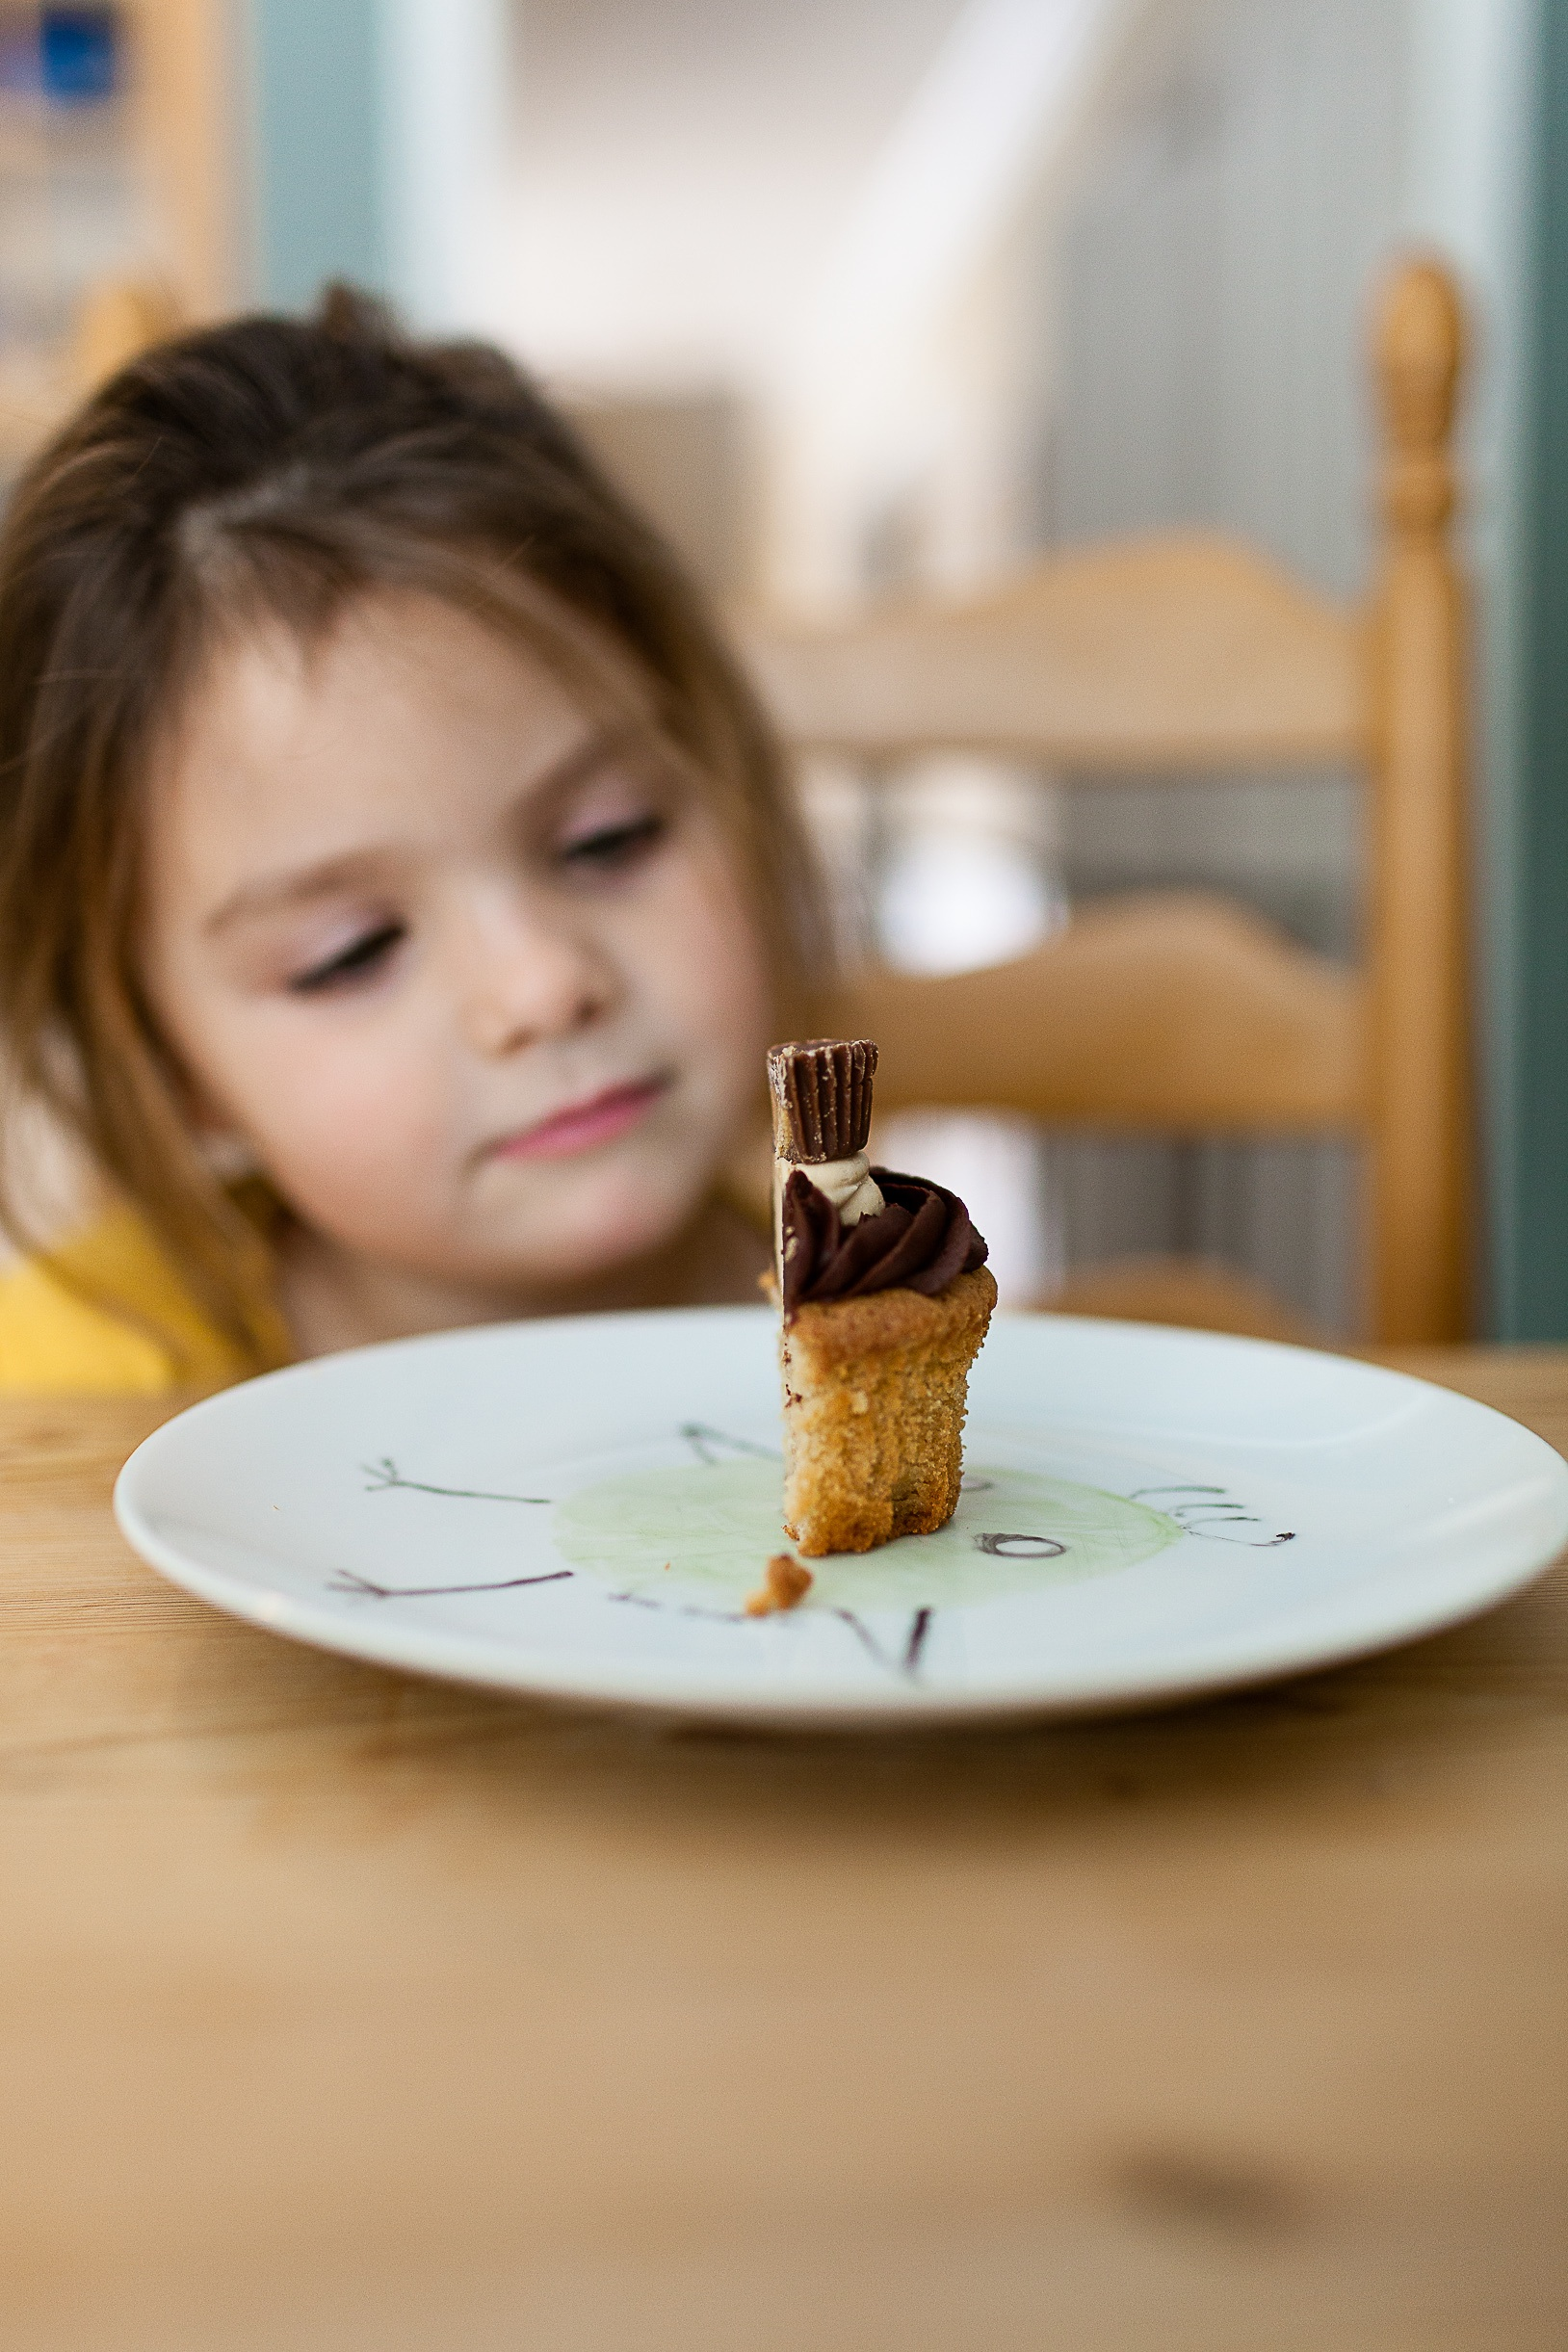 Not my kid. But she wants to know why is there only half a cupcake? And what is that icky stuff? And she doesn't like that kind! (Photo Credit: Danielle MacInnes, Unsplash.com)